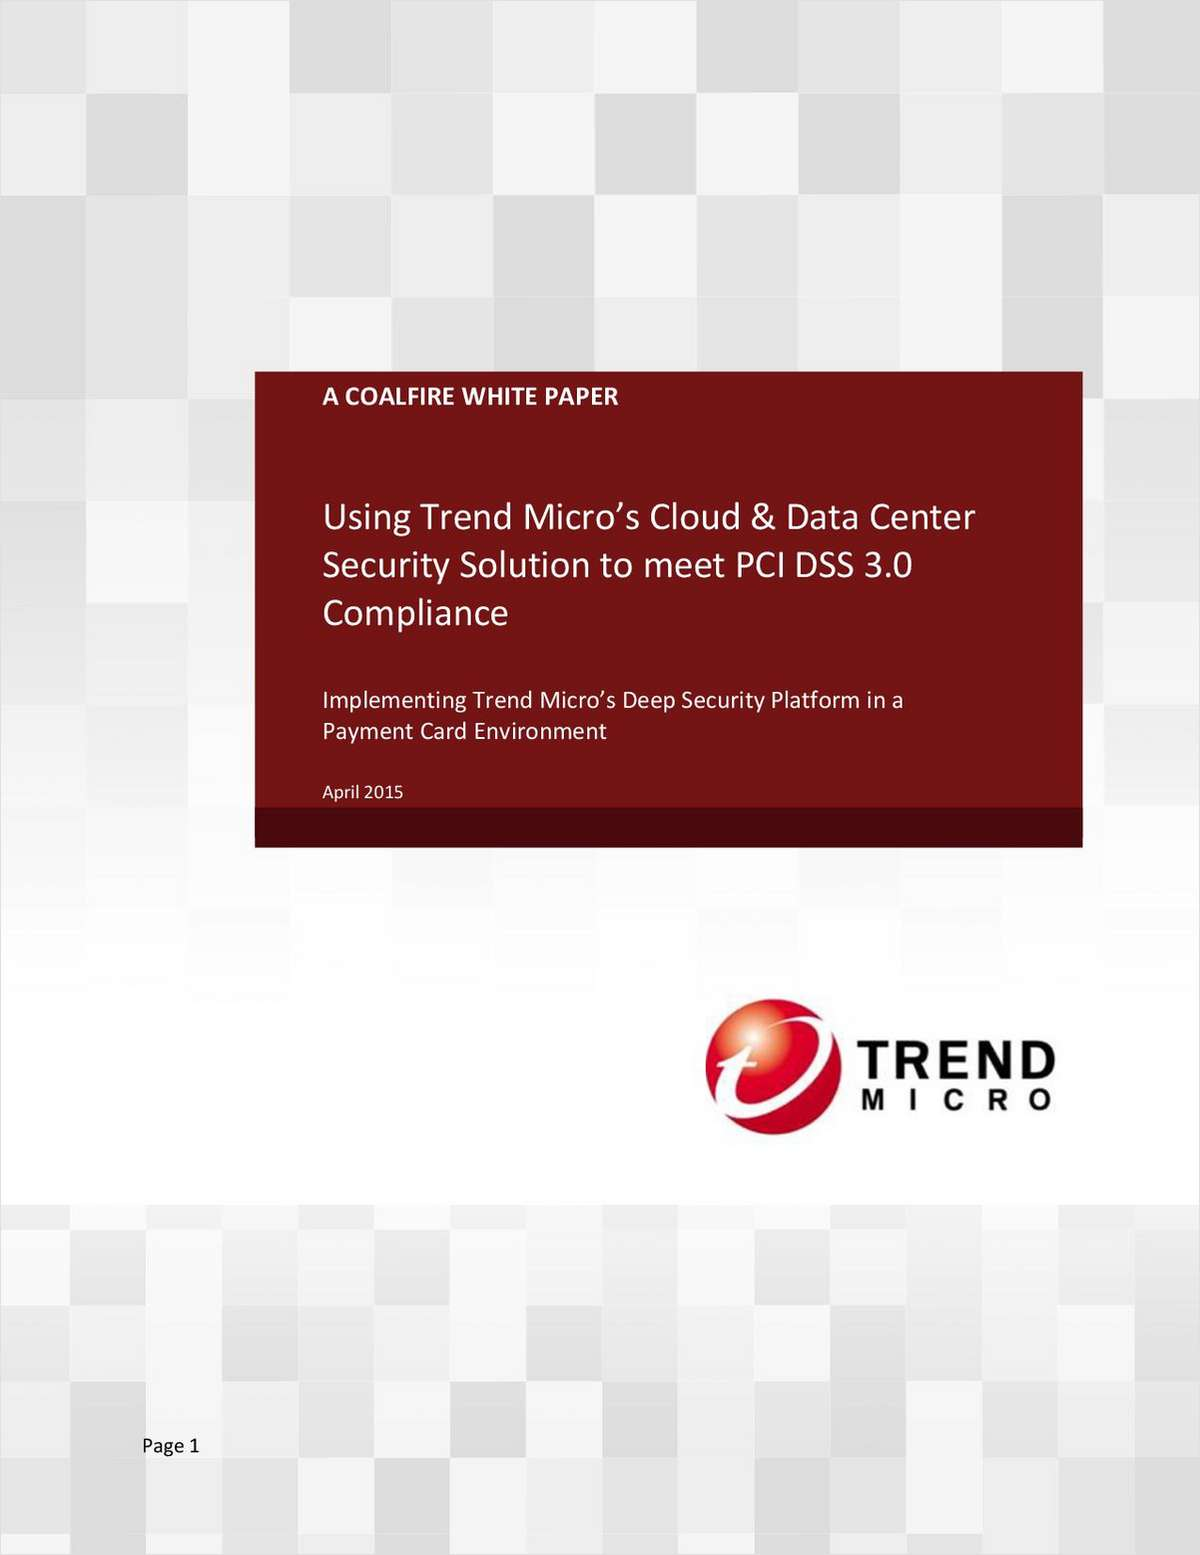 Using Trend Micro's Cloud & Data Center Security Solution to meet PCI DSS 3.0 Compliance